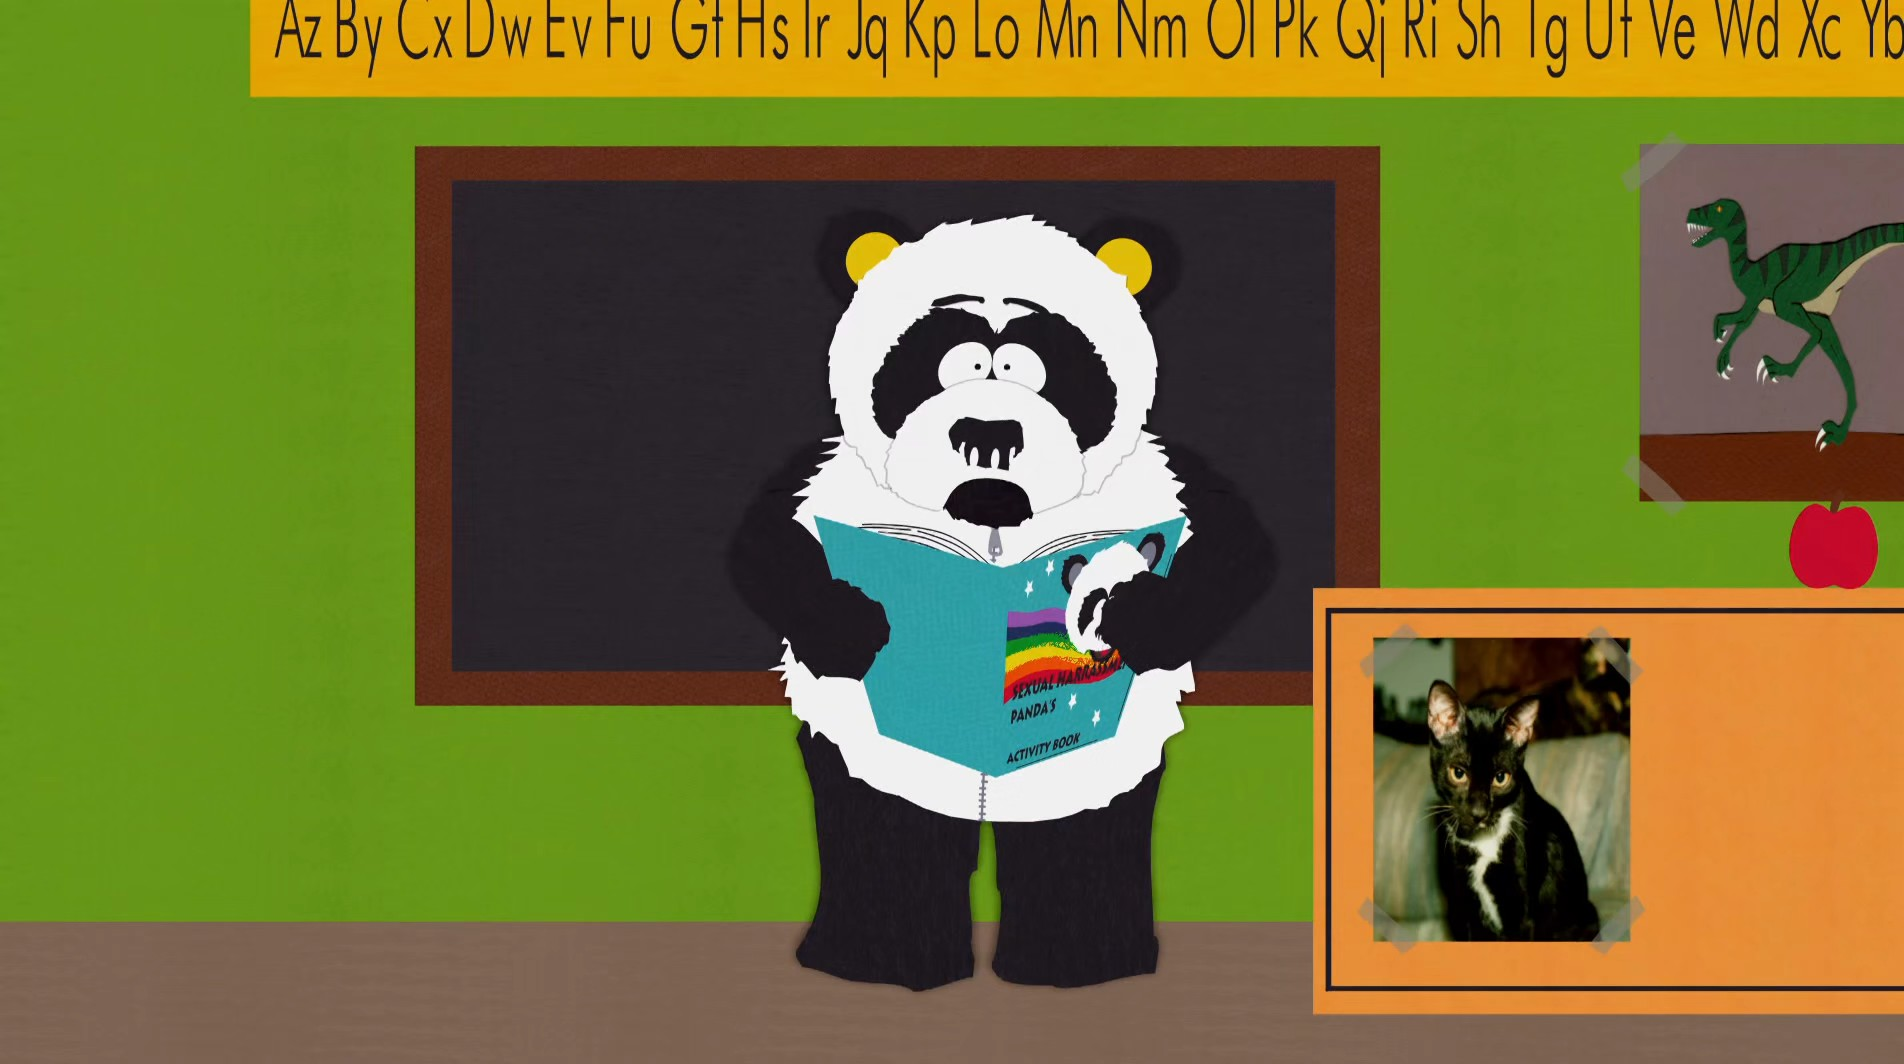 Sexual harassment panda cartoon head